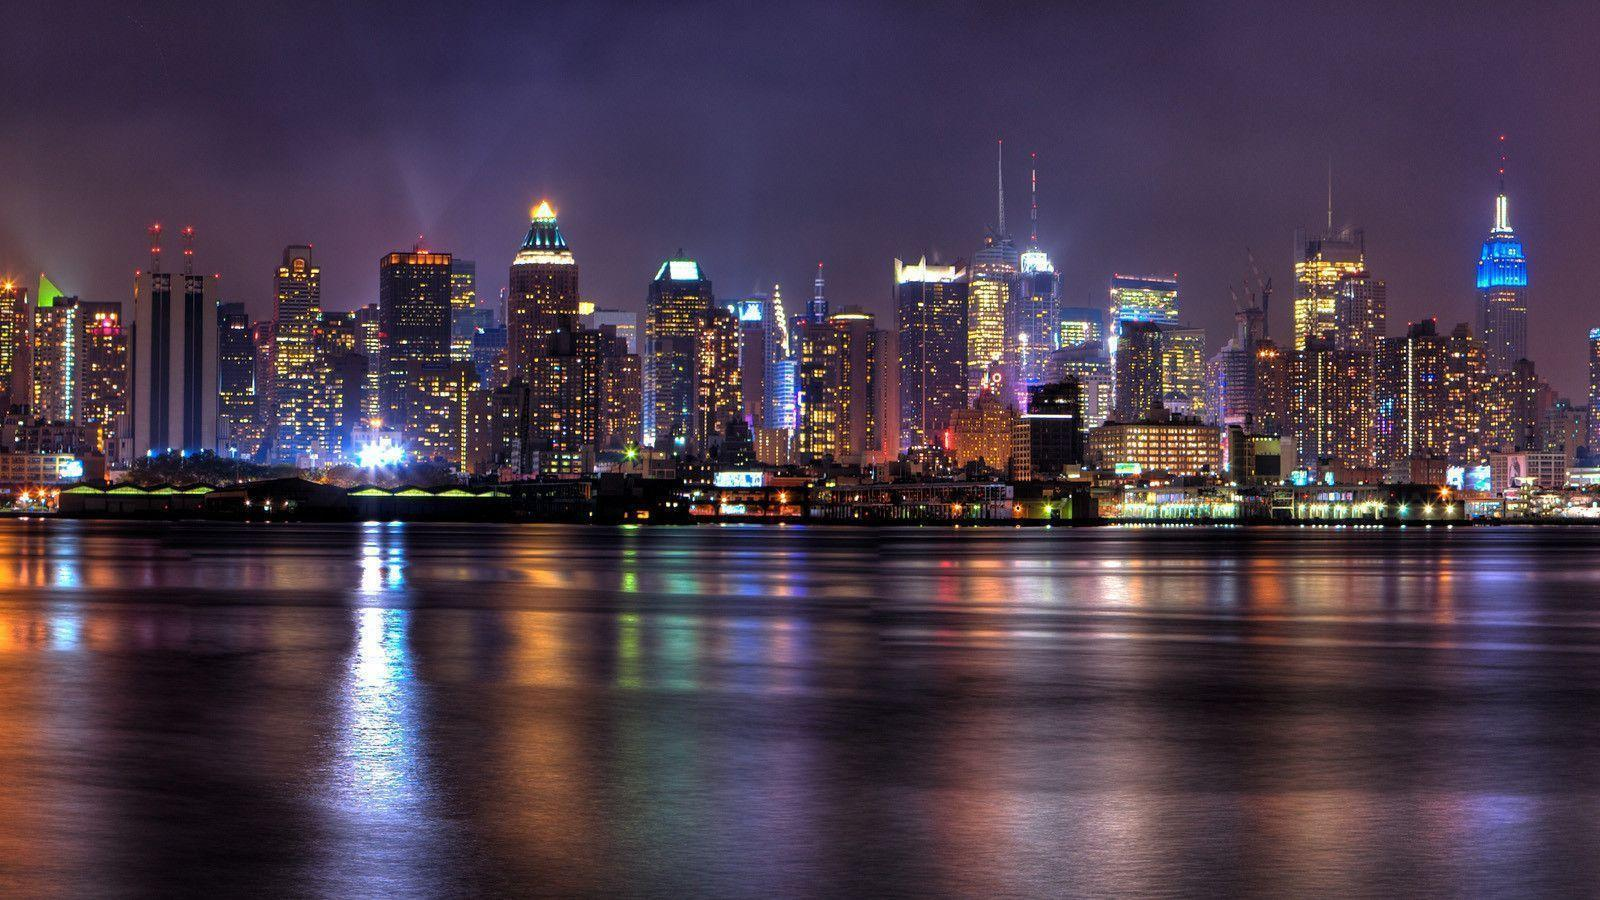 City skyline wallpapers wallpaper cave - New york skyline computer wallpaper ...